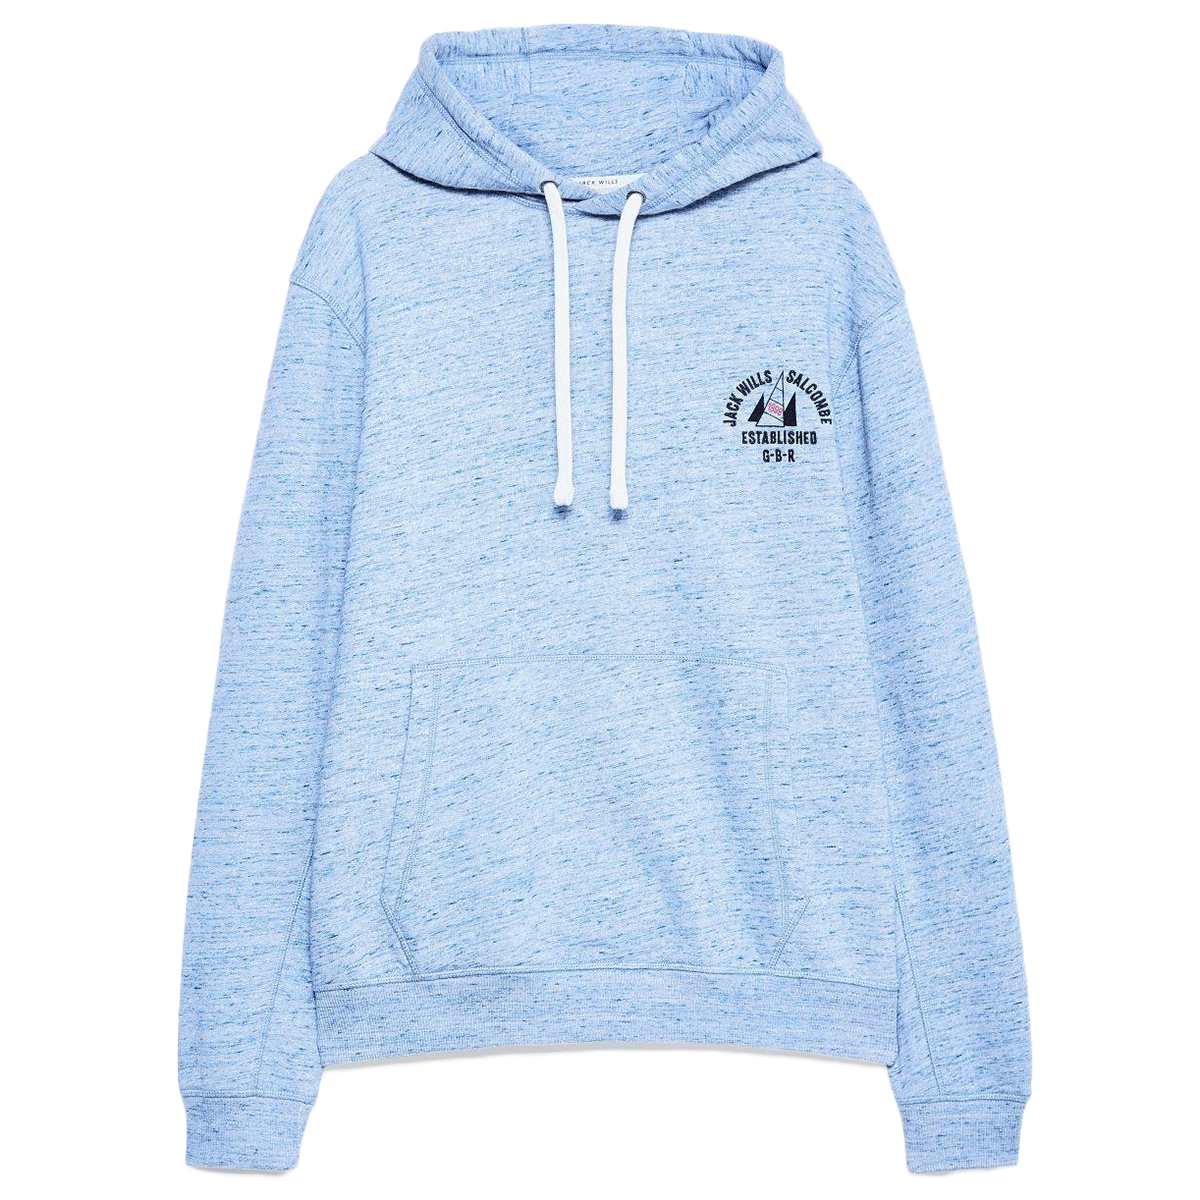 Jack Wills Men's Balham Fleck Graphic Hoodie - Blue, M